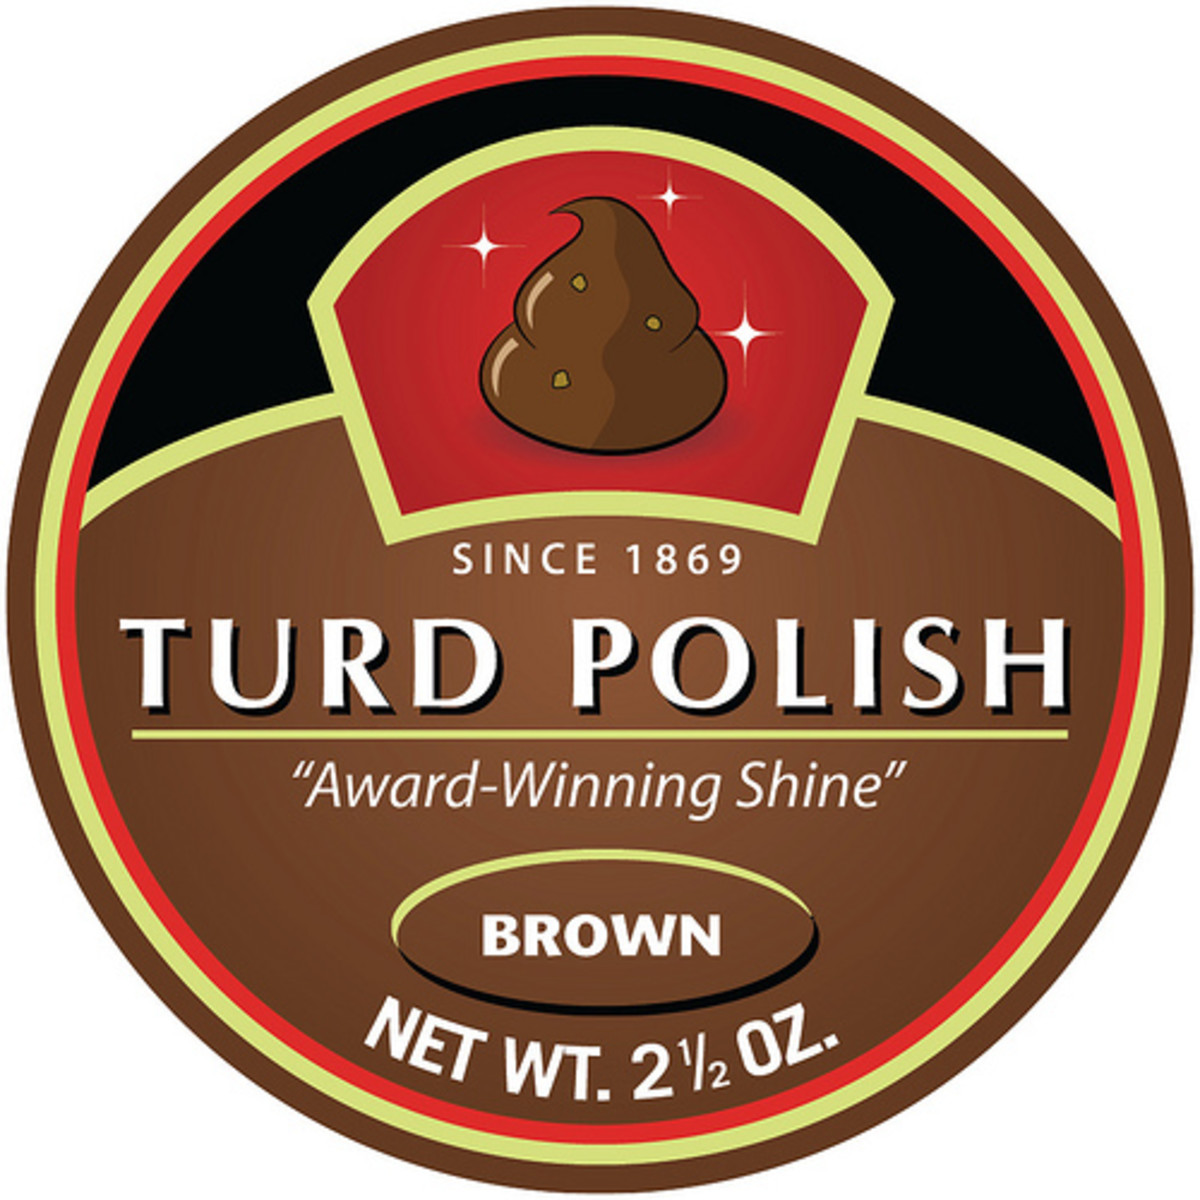 YOU CAN POLISH A TURD